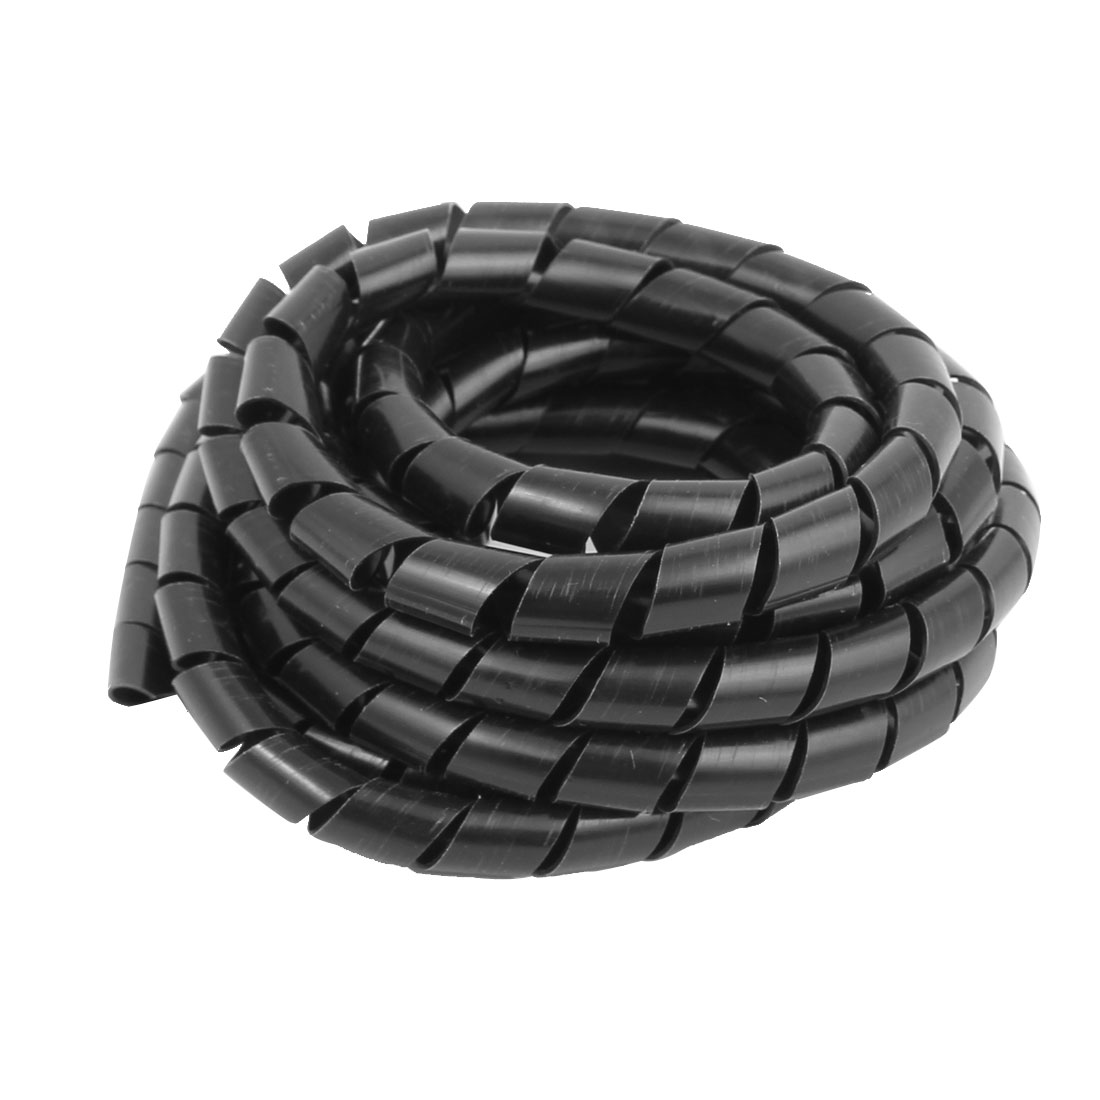 Flexible Rohre 2 7m Length 10mm Od Flexible Spiral Tube Wrap Cable Wire Computer Cord Black